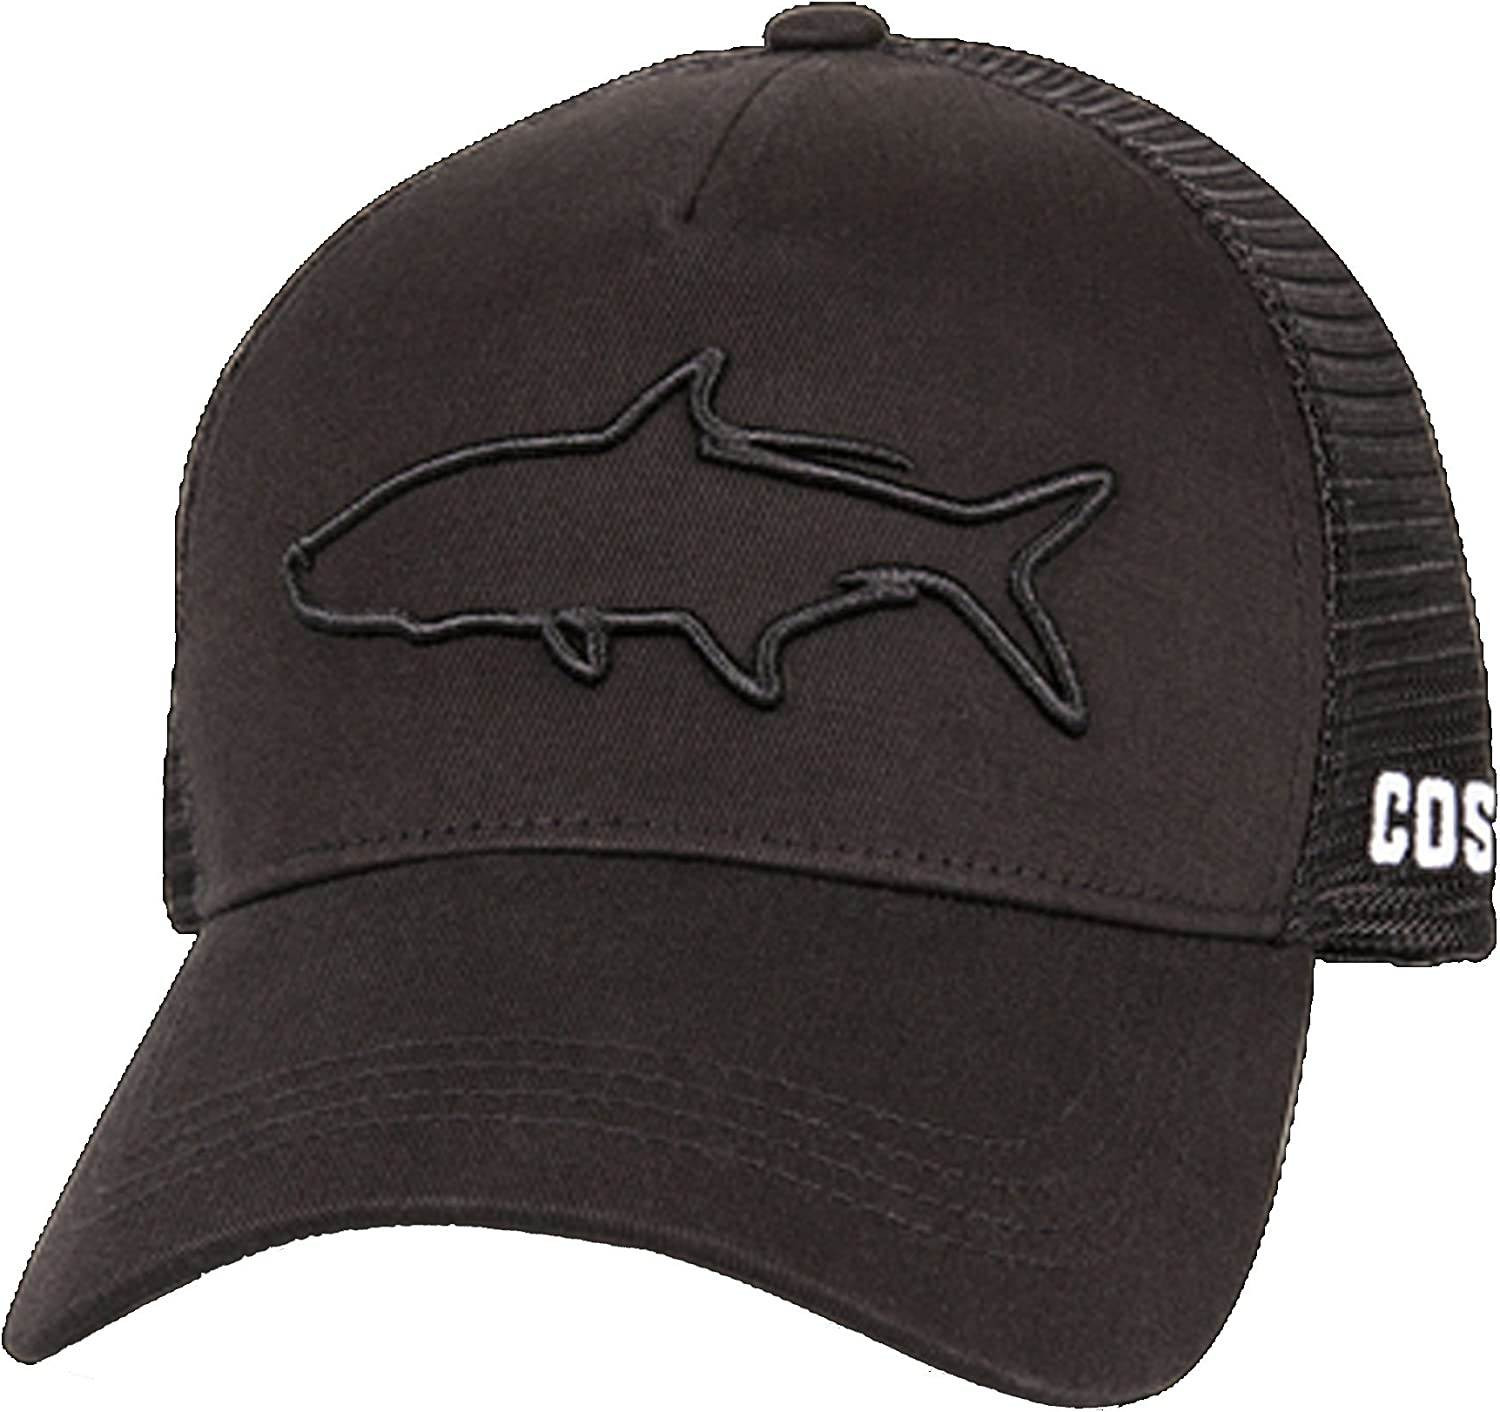 Costa Del Mar Stealth Tarpon Trucker Hat-Black